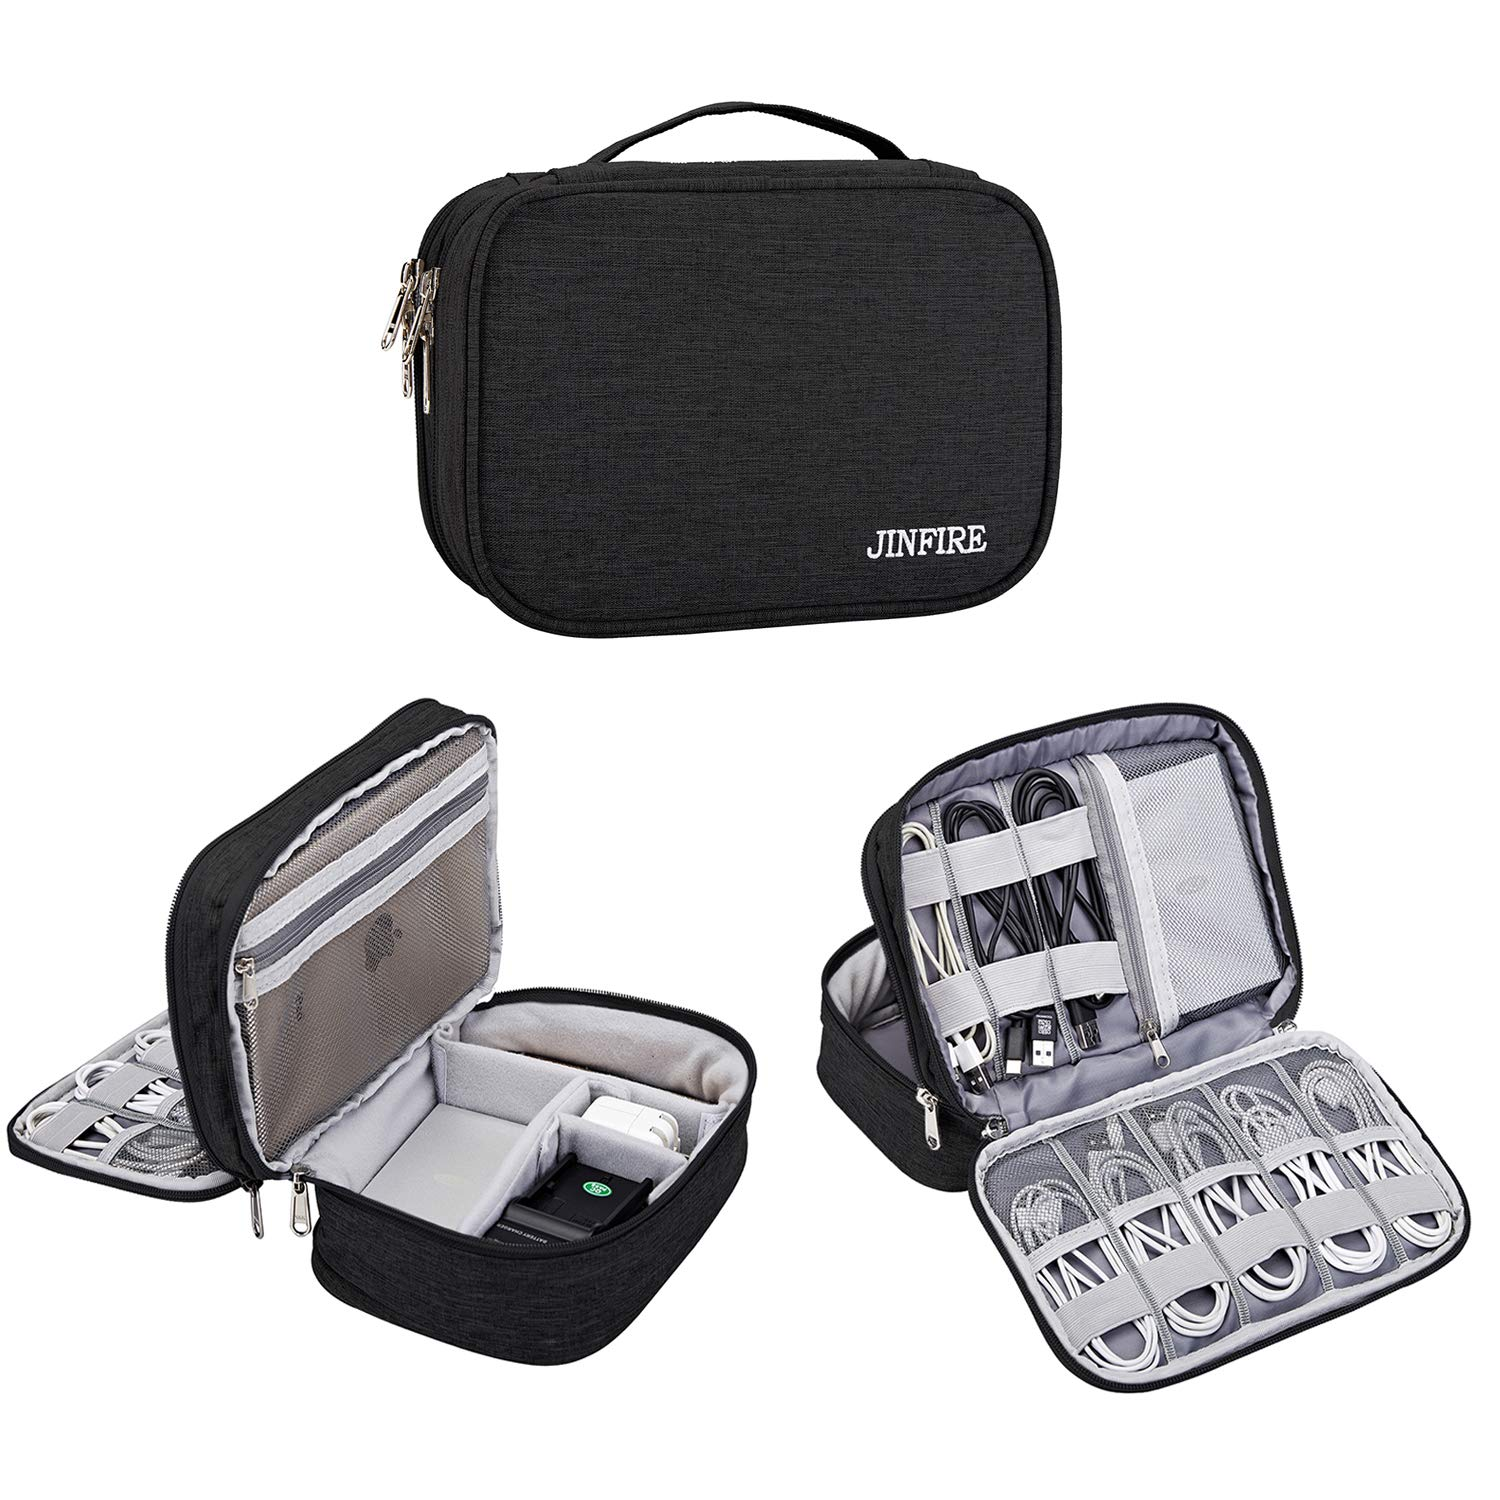 JINFIRE Electronics Organizer Travel Cable Storage Bag Waterproof Electronic Accessories Bag for Cables, Charger, Phone, iPad, Black